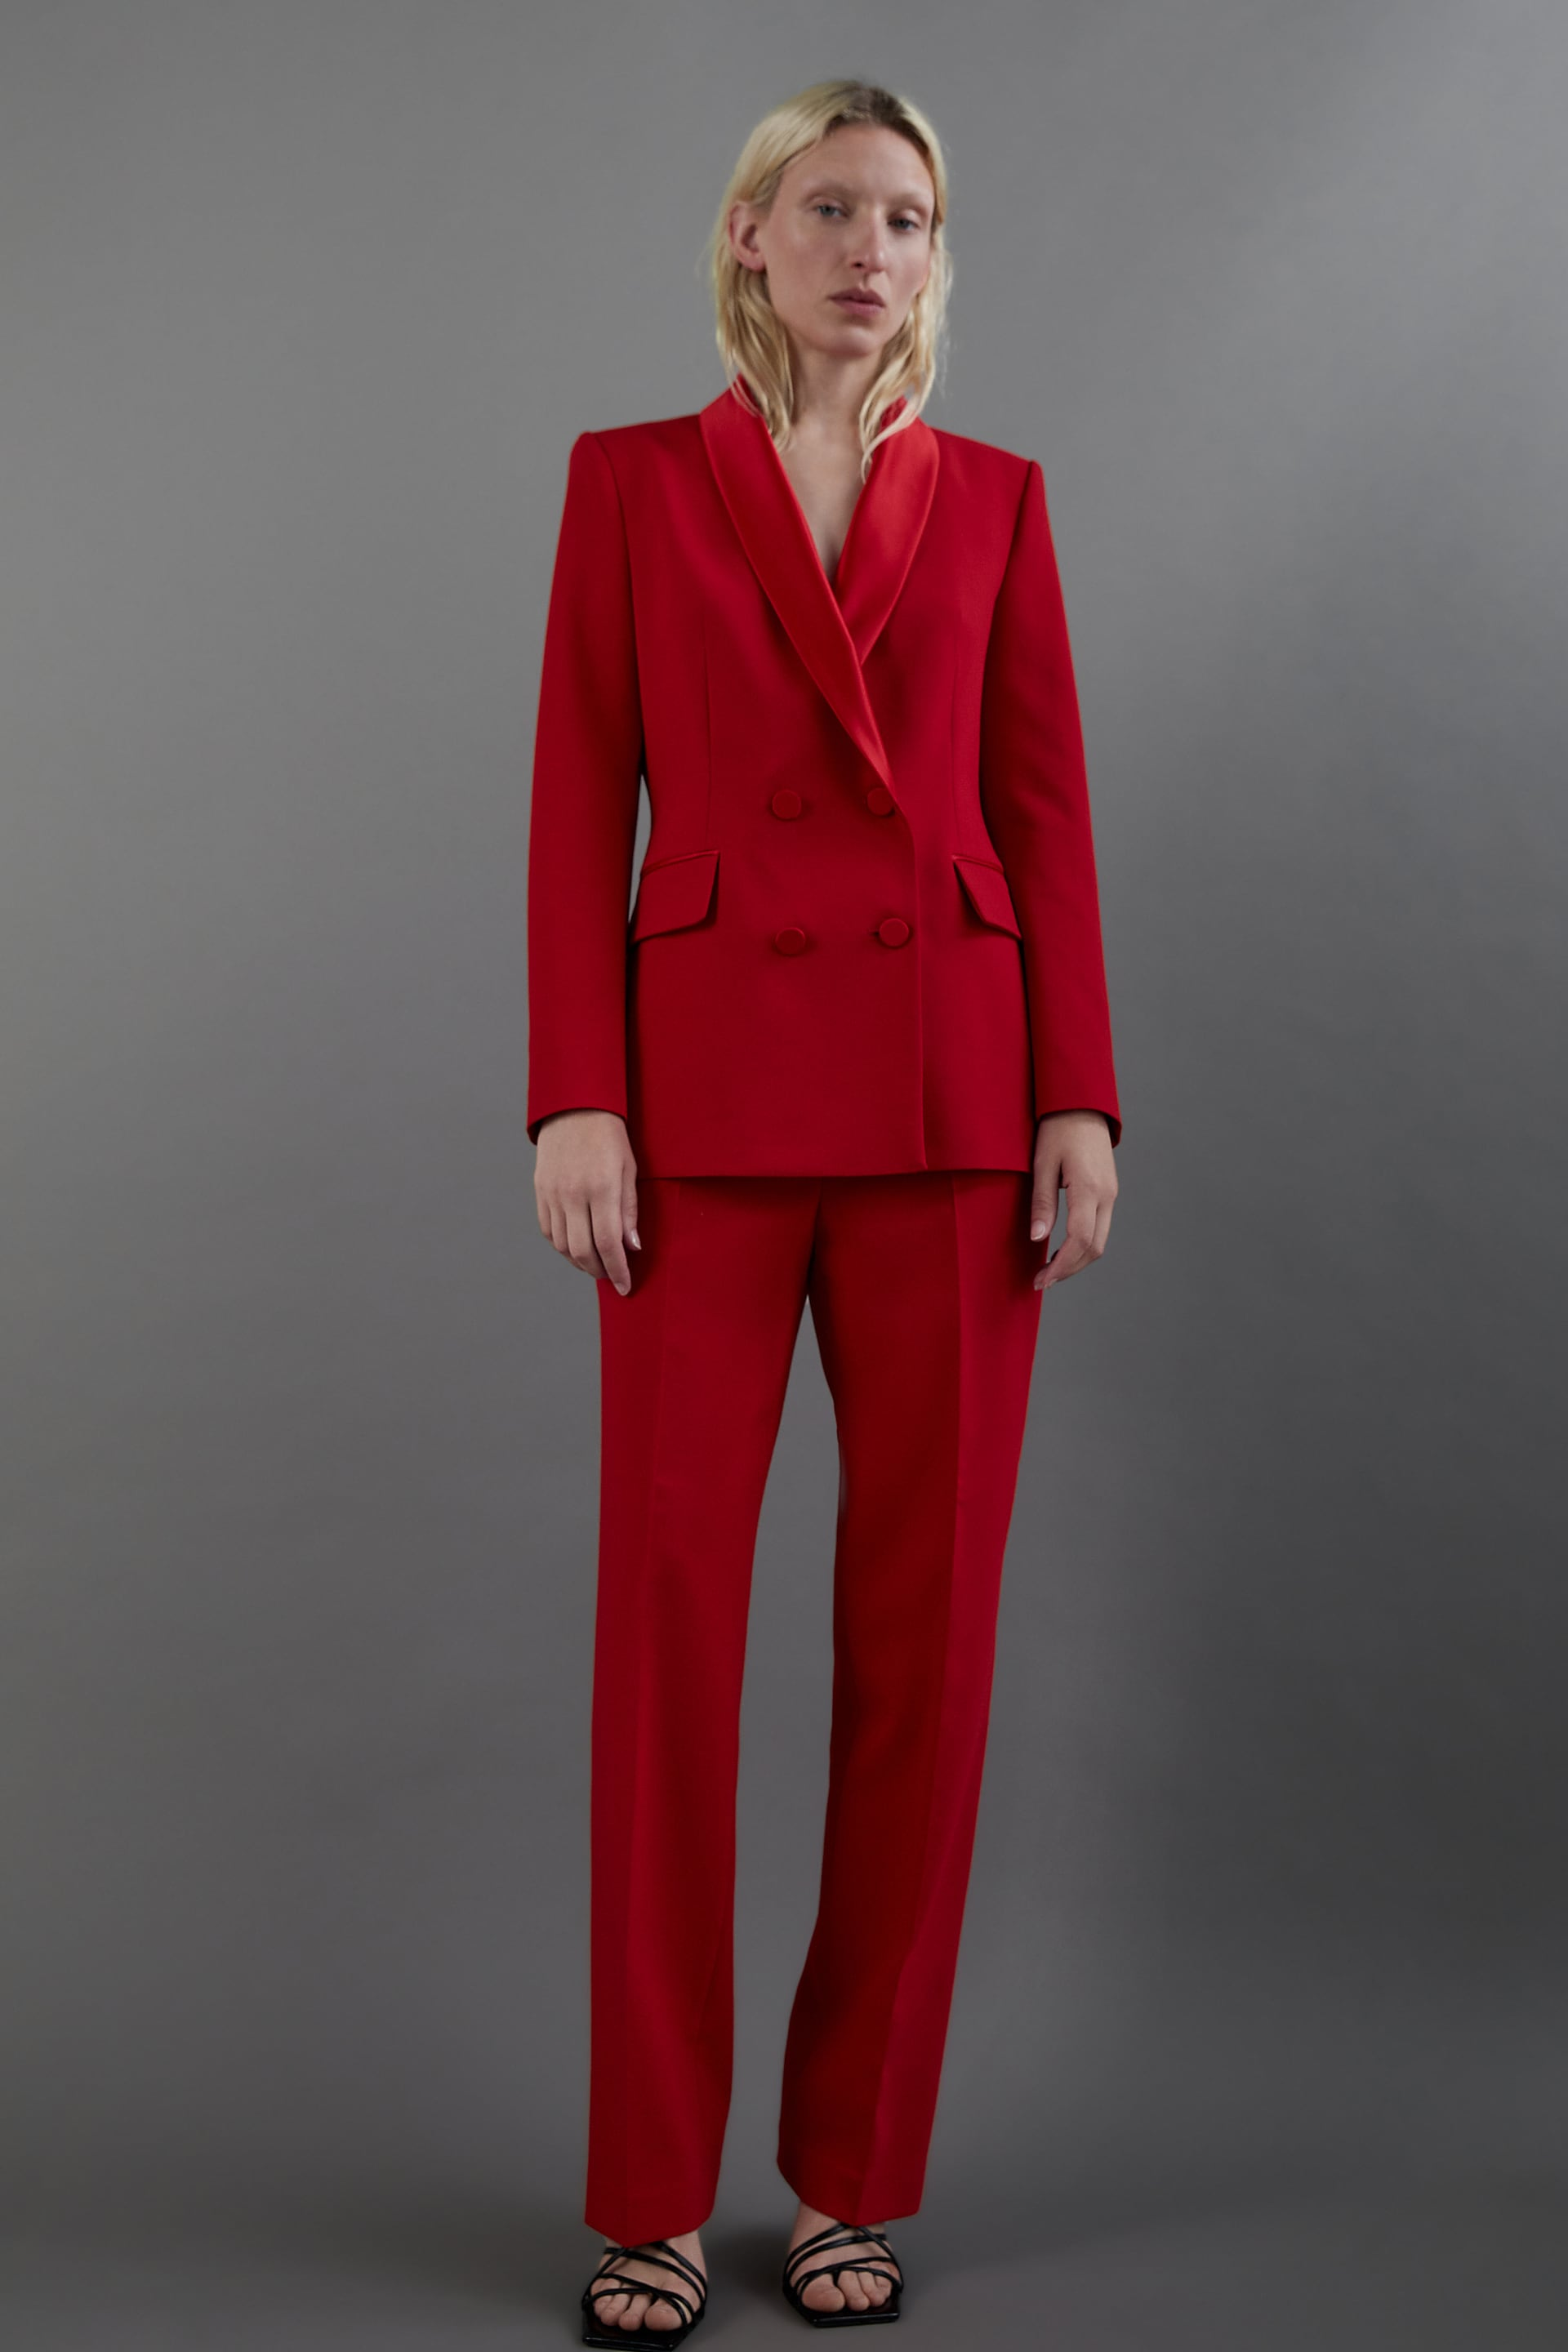 Zara Red Suit.jpg